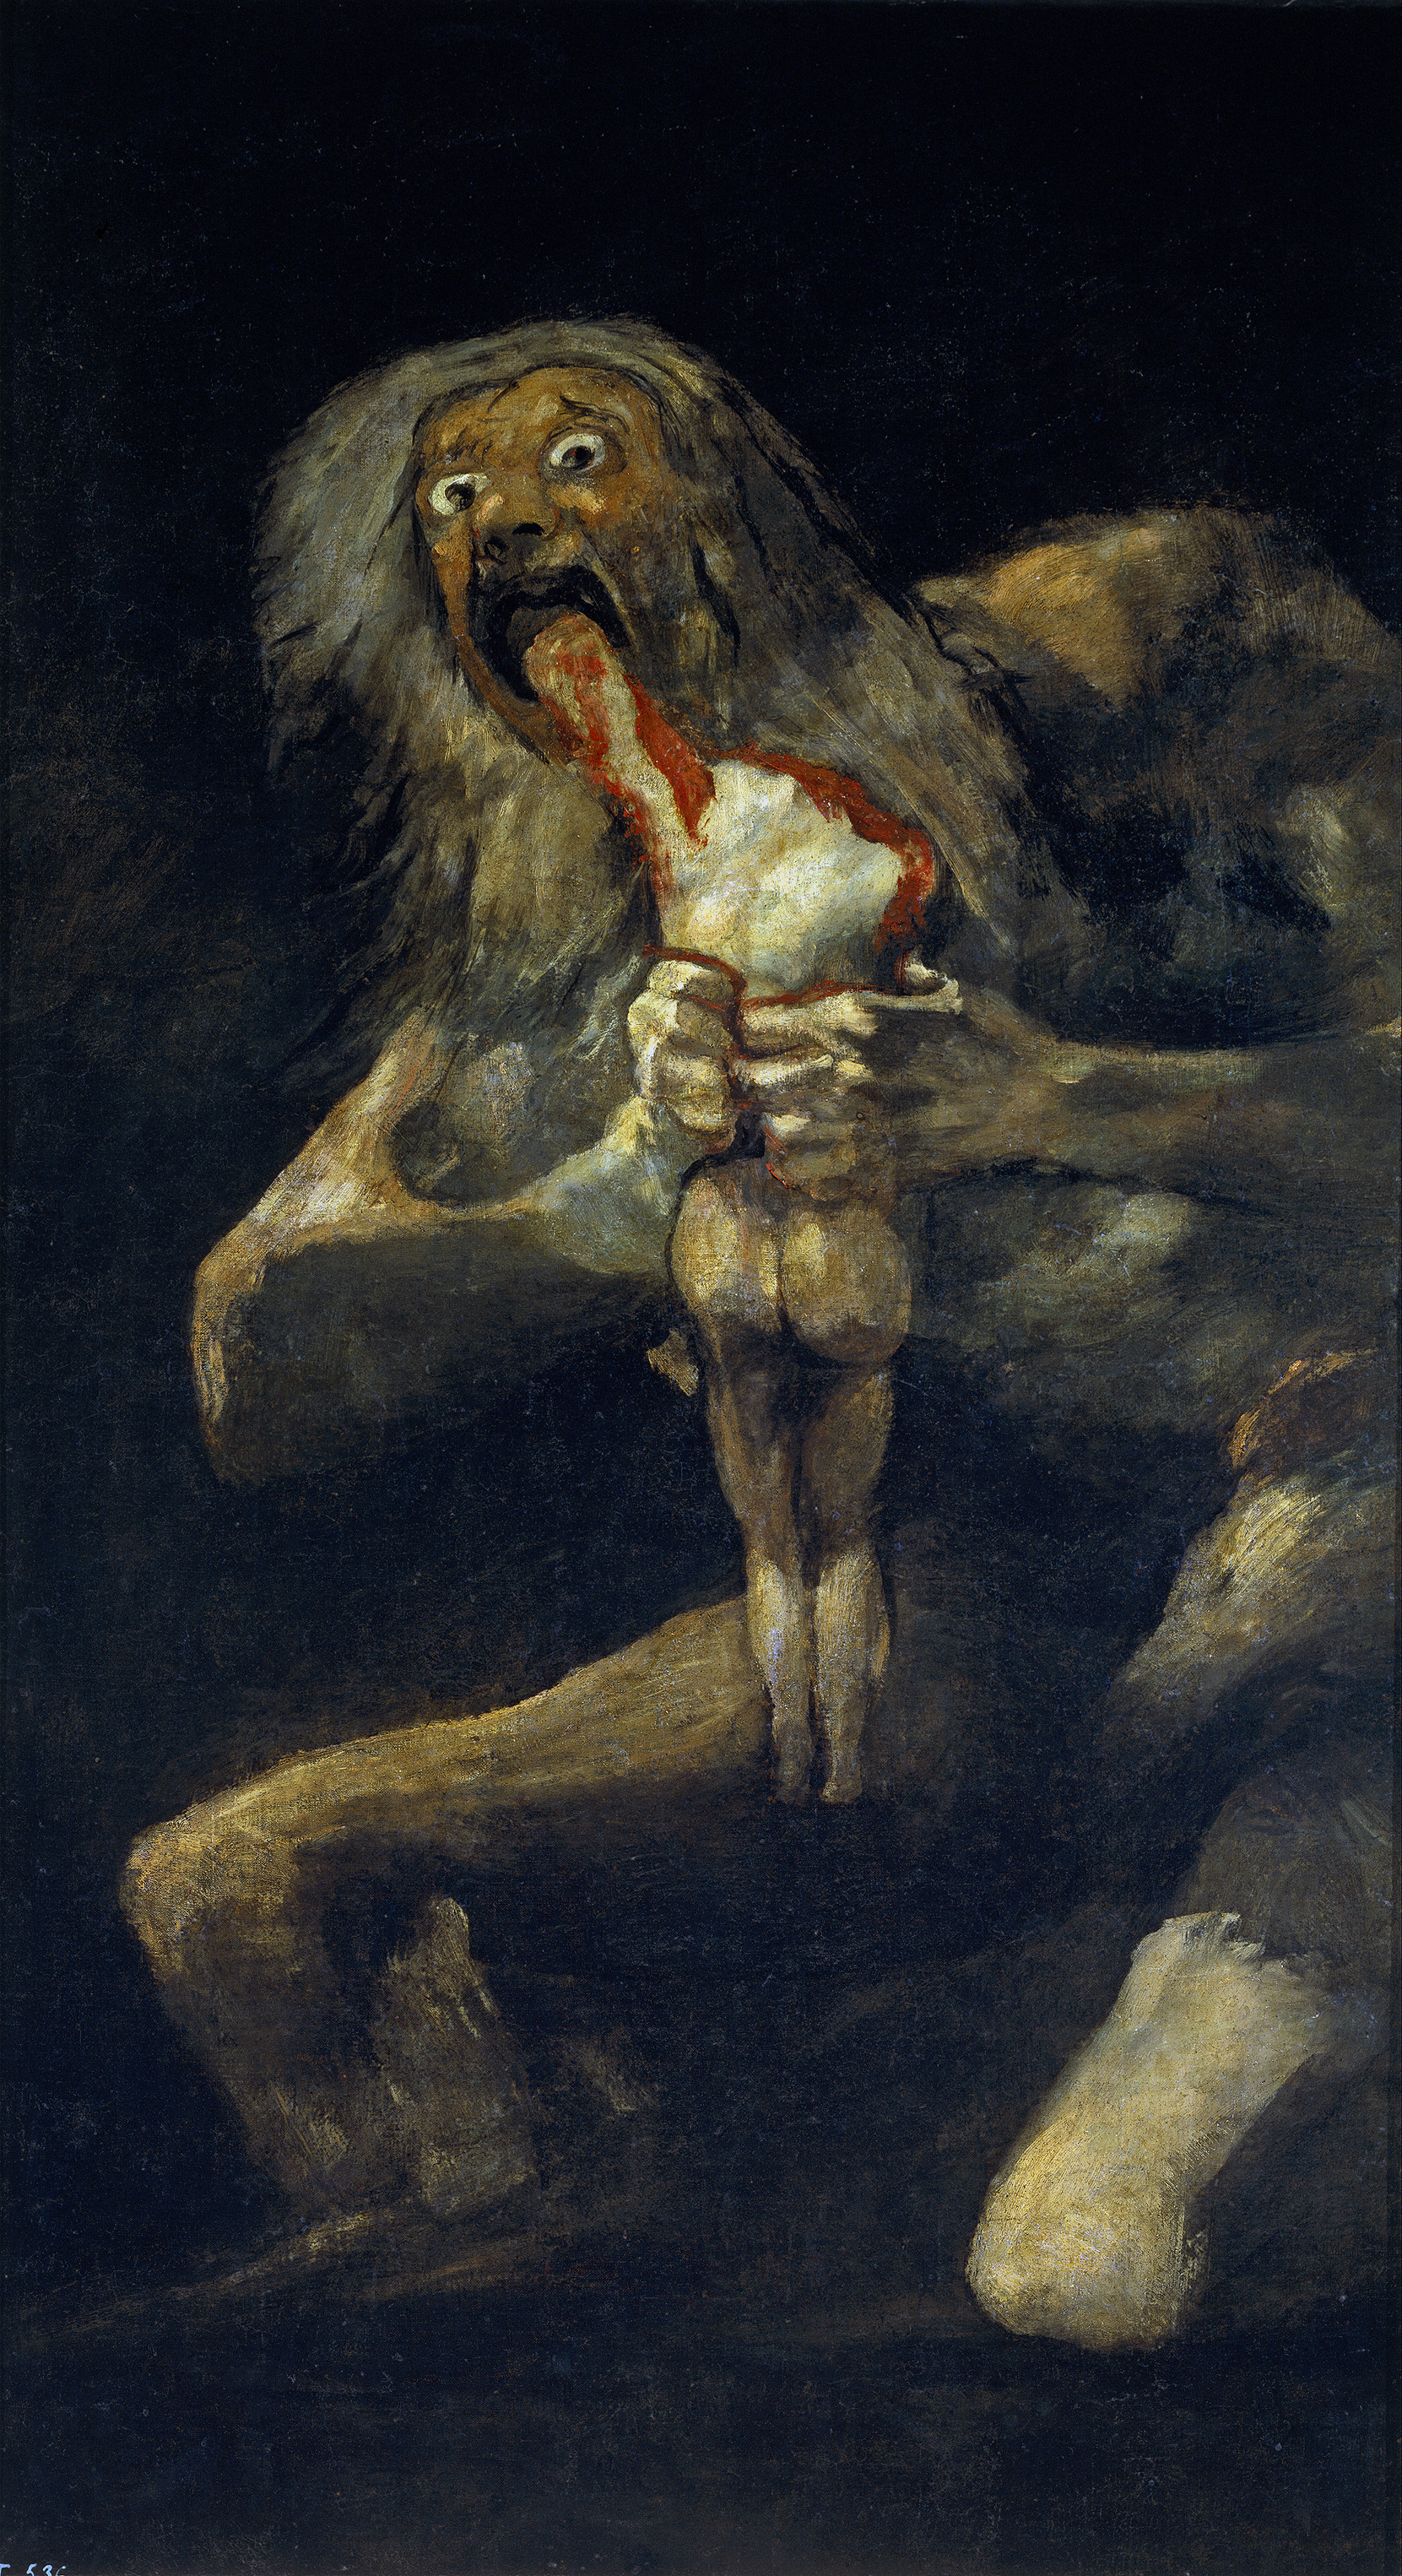 http://upload.wikimedia.org/wikipedia/commons/8/82/Francisco_de_Goya%2C_Saturno_devorando_a_su_hijo_%281819-1823%29.jpg